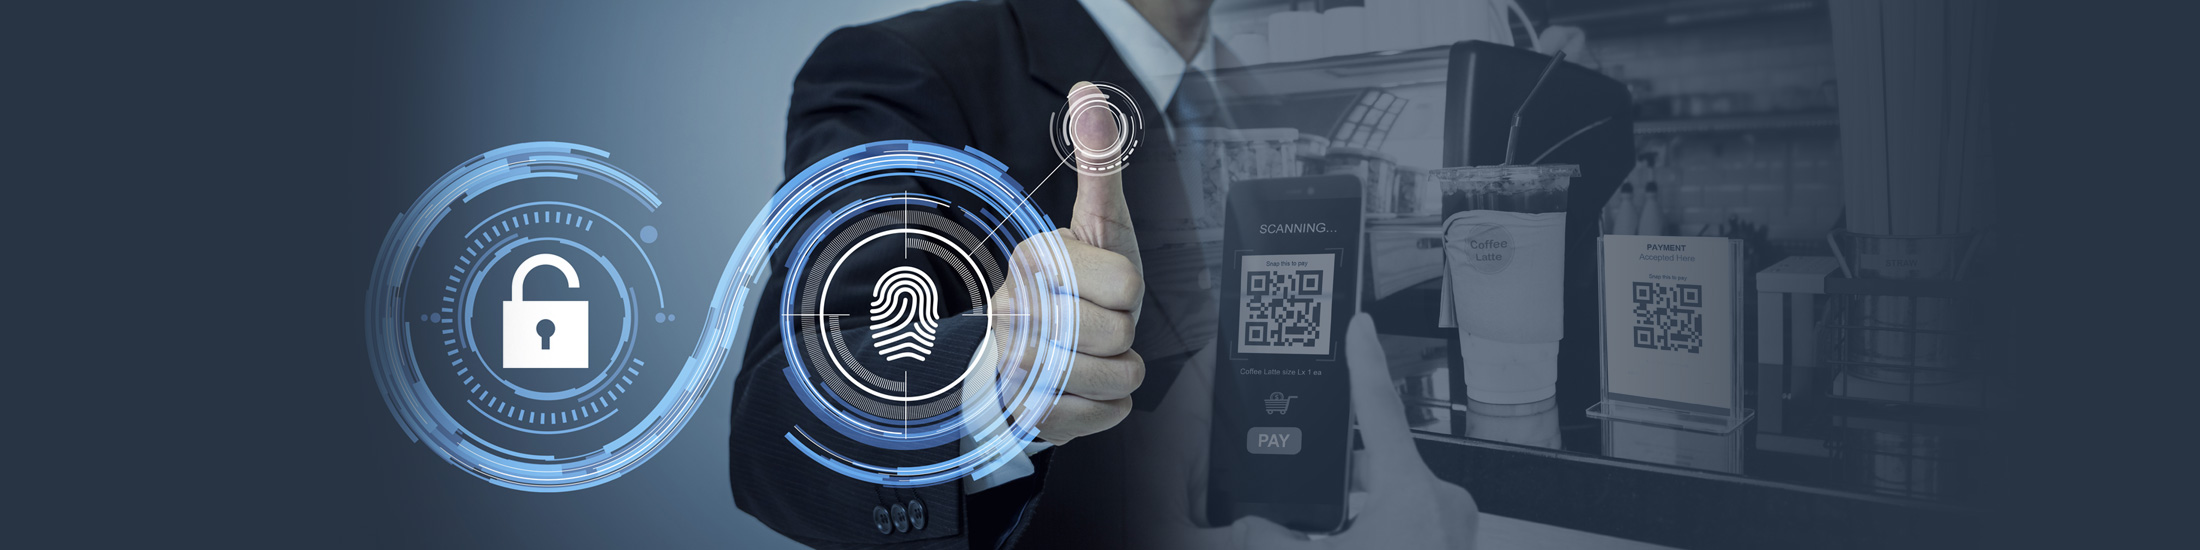 Report: Consumers More Confident in Biometrics, QR Code Payments